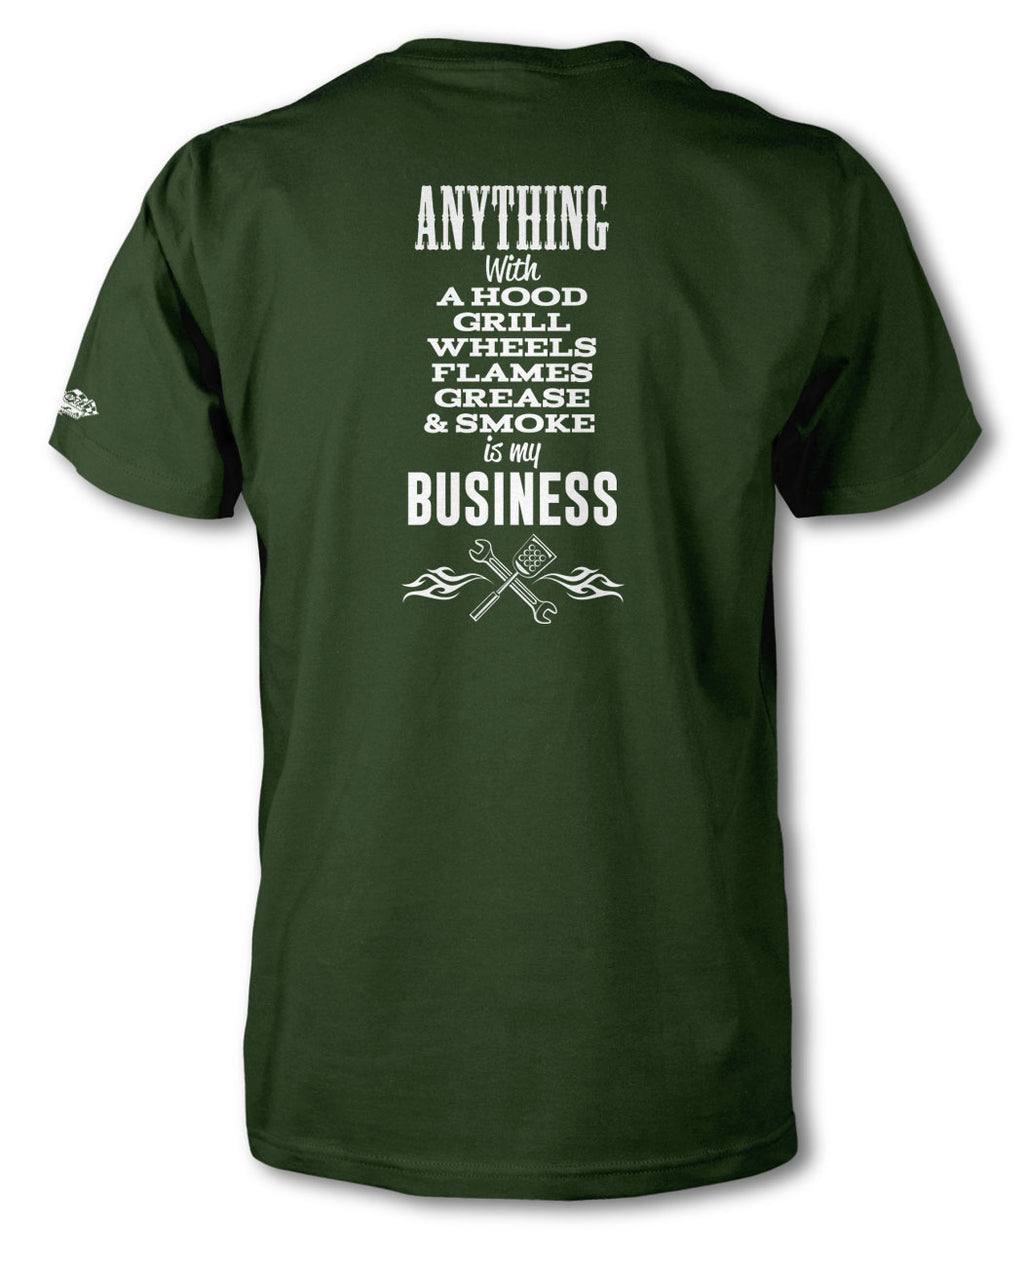 Anything with A Hood, Wheels, Grill, Flames, Grease & Smoke is my Business - T-Shirt - Men